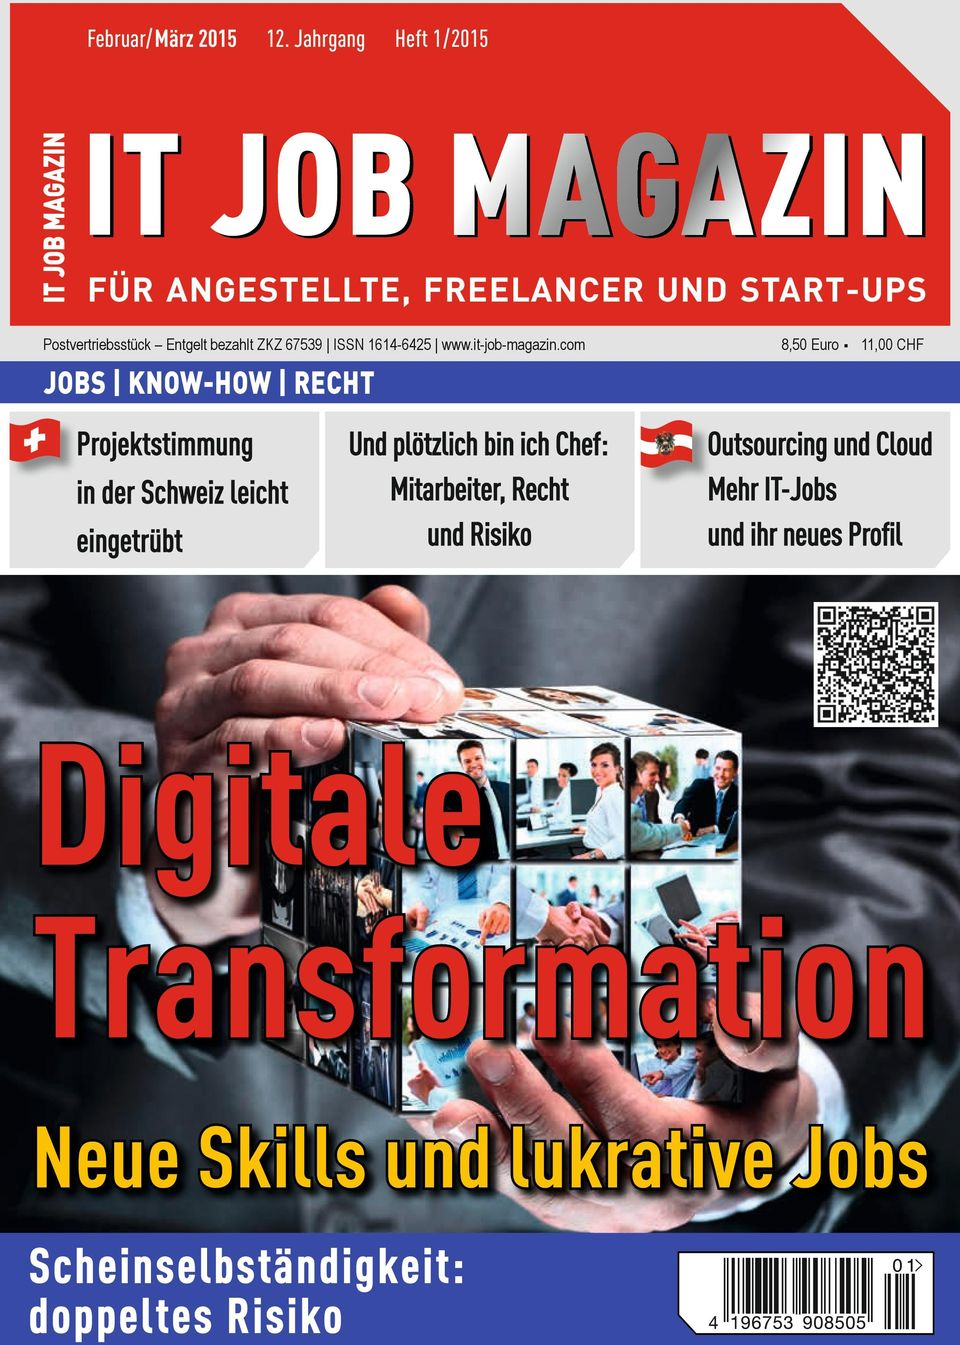 67539 ISSN 1614-6425 www.it-job-magazin.